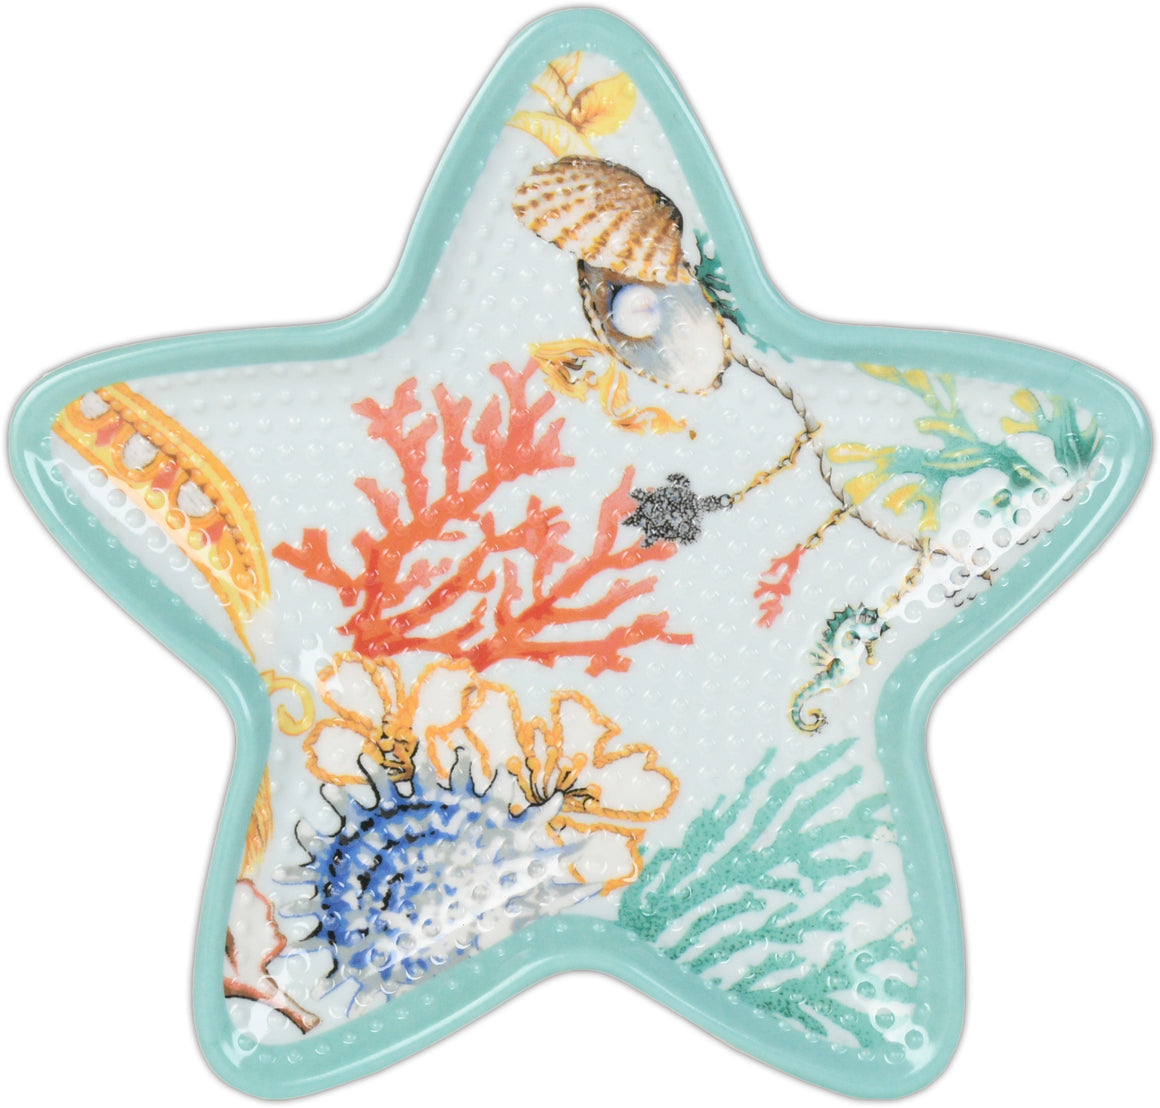 St. Tropez Starfish Mini Plate